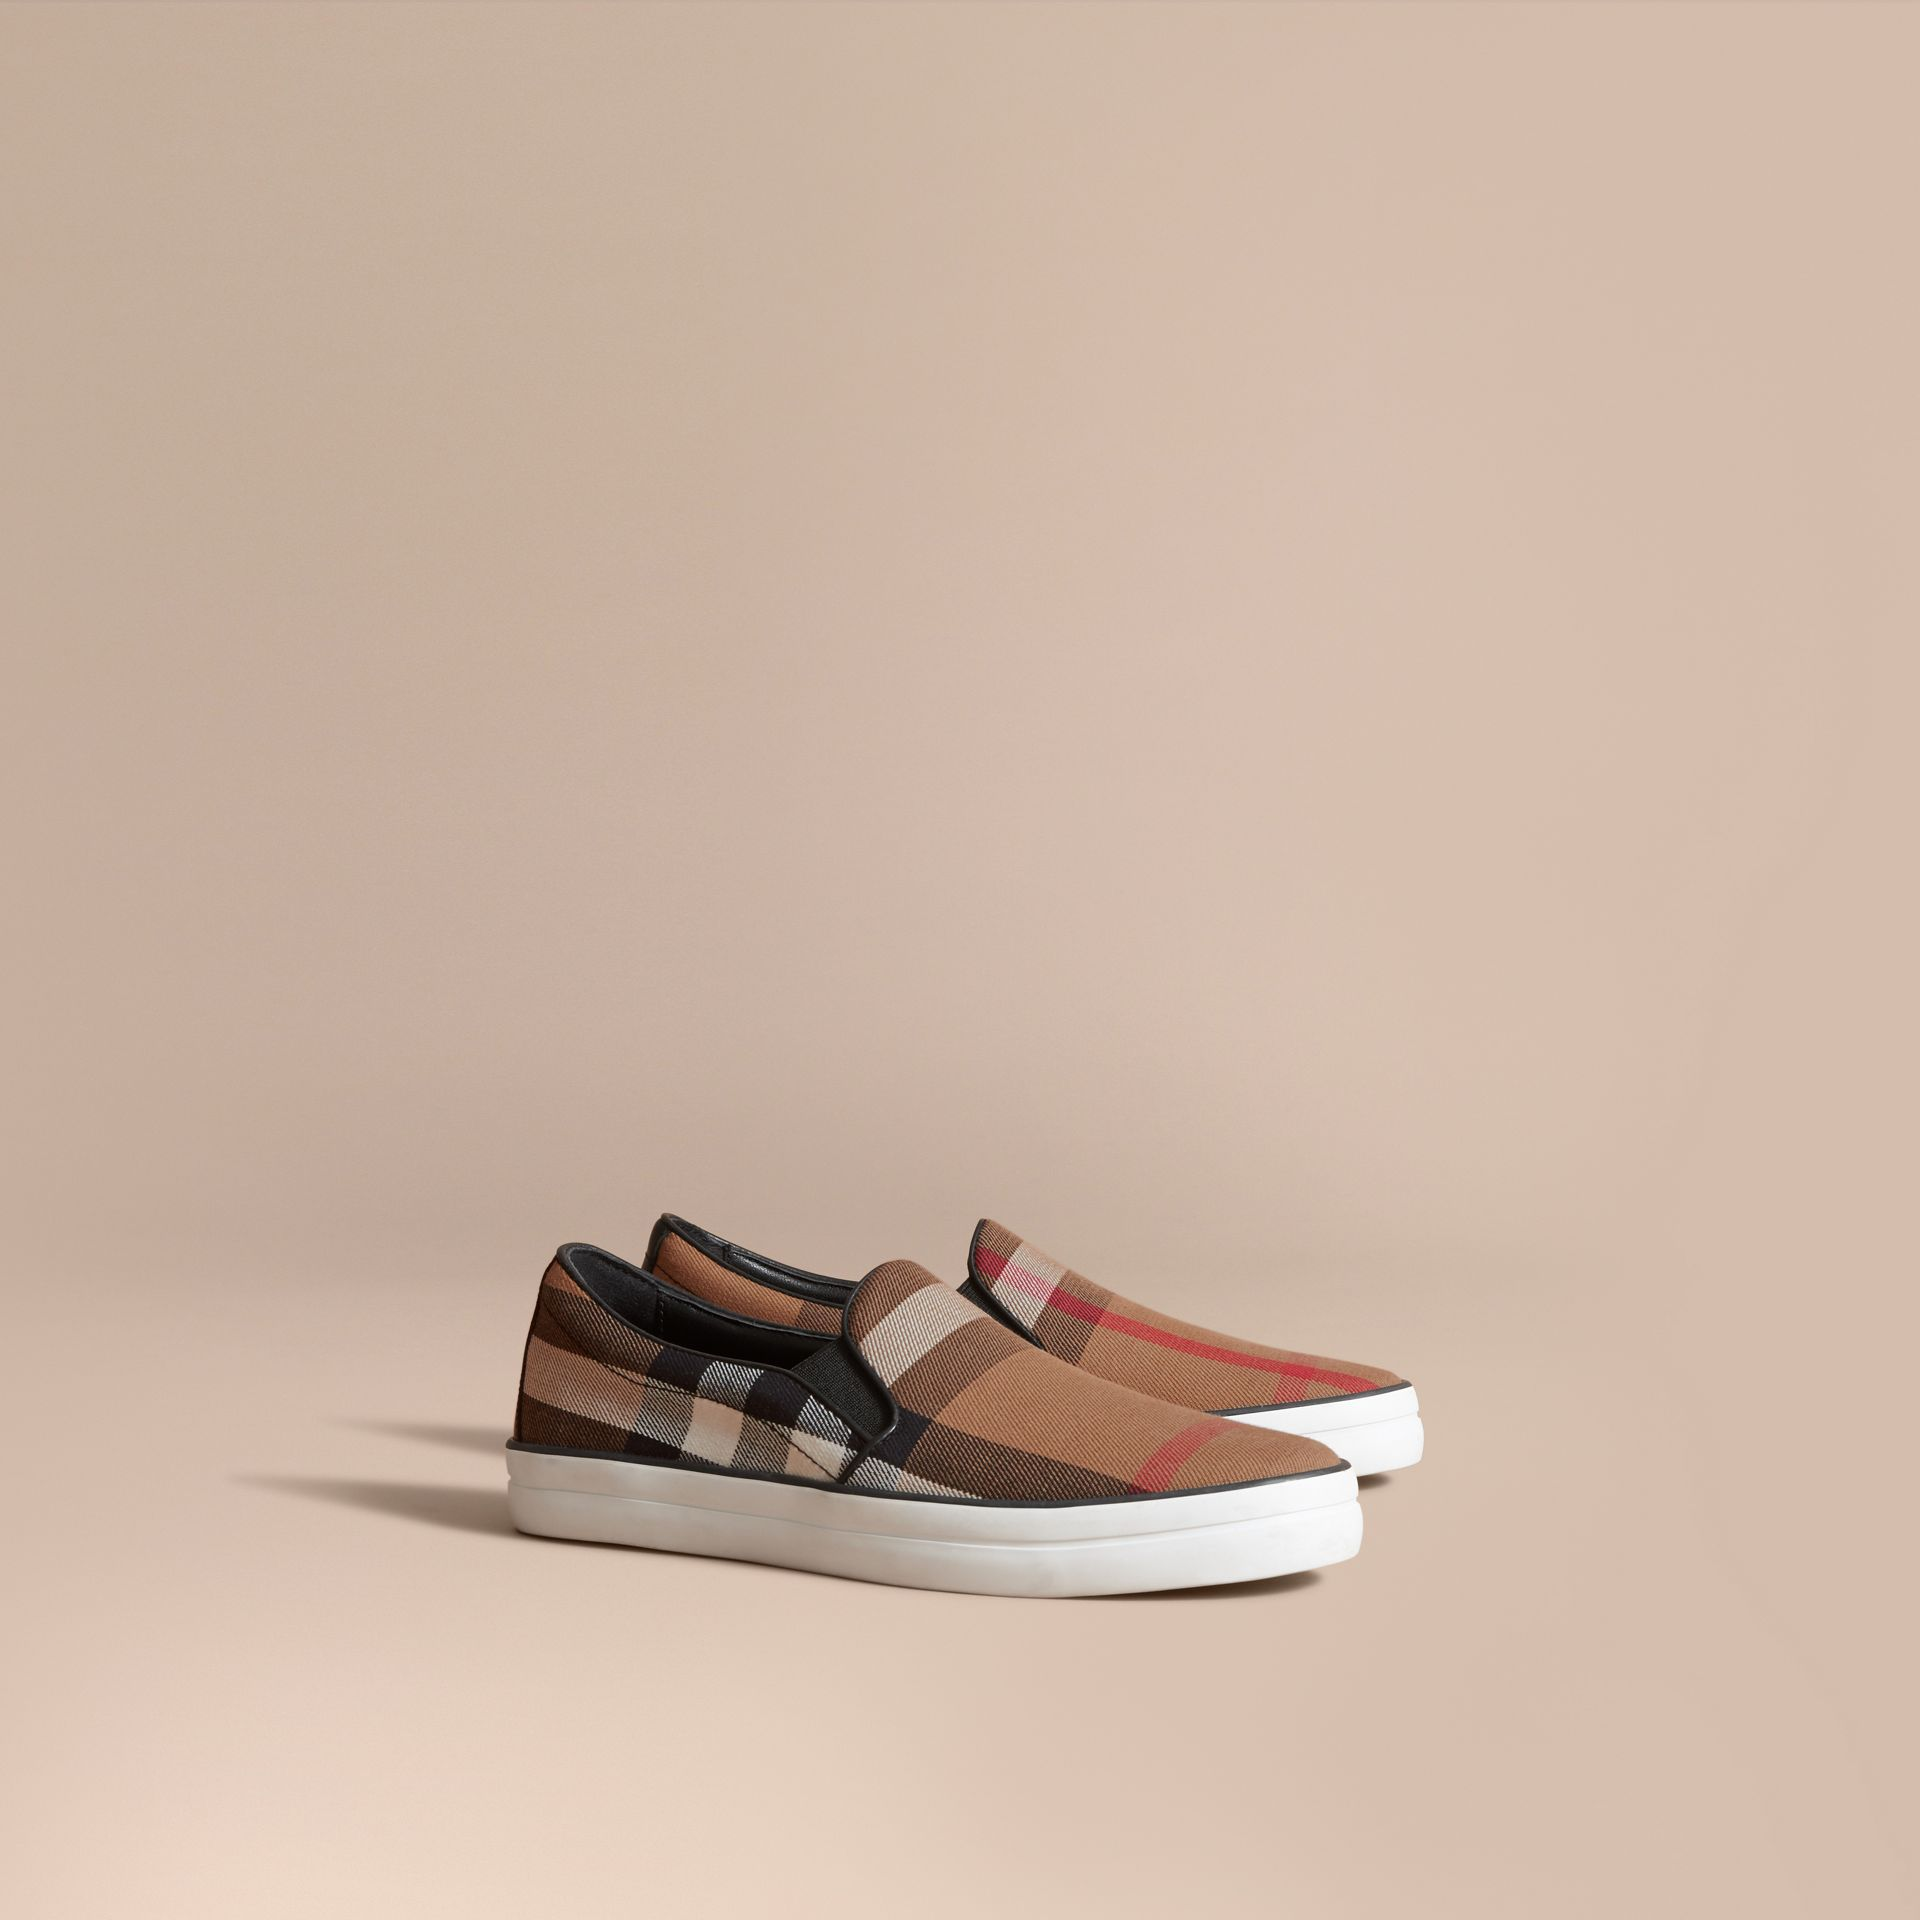 House Check Cotton and Leather Slip-on Trainers in Classic - Women | Burberry - gallery image 1